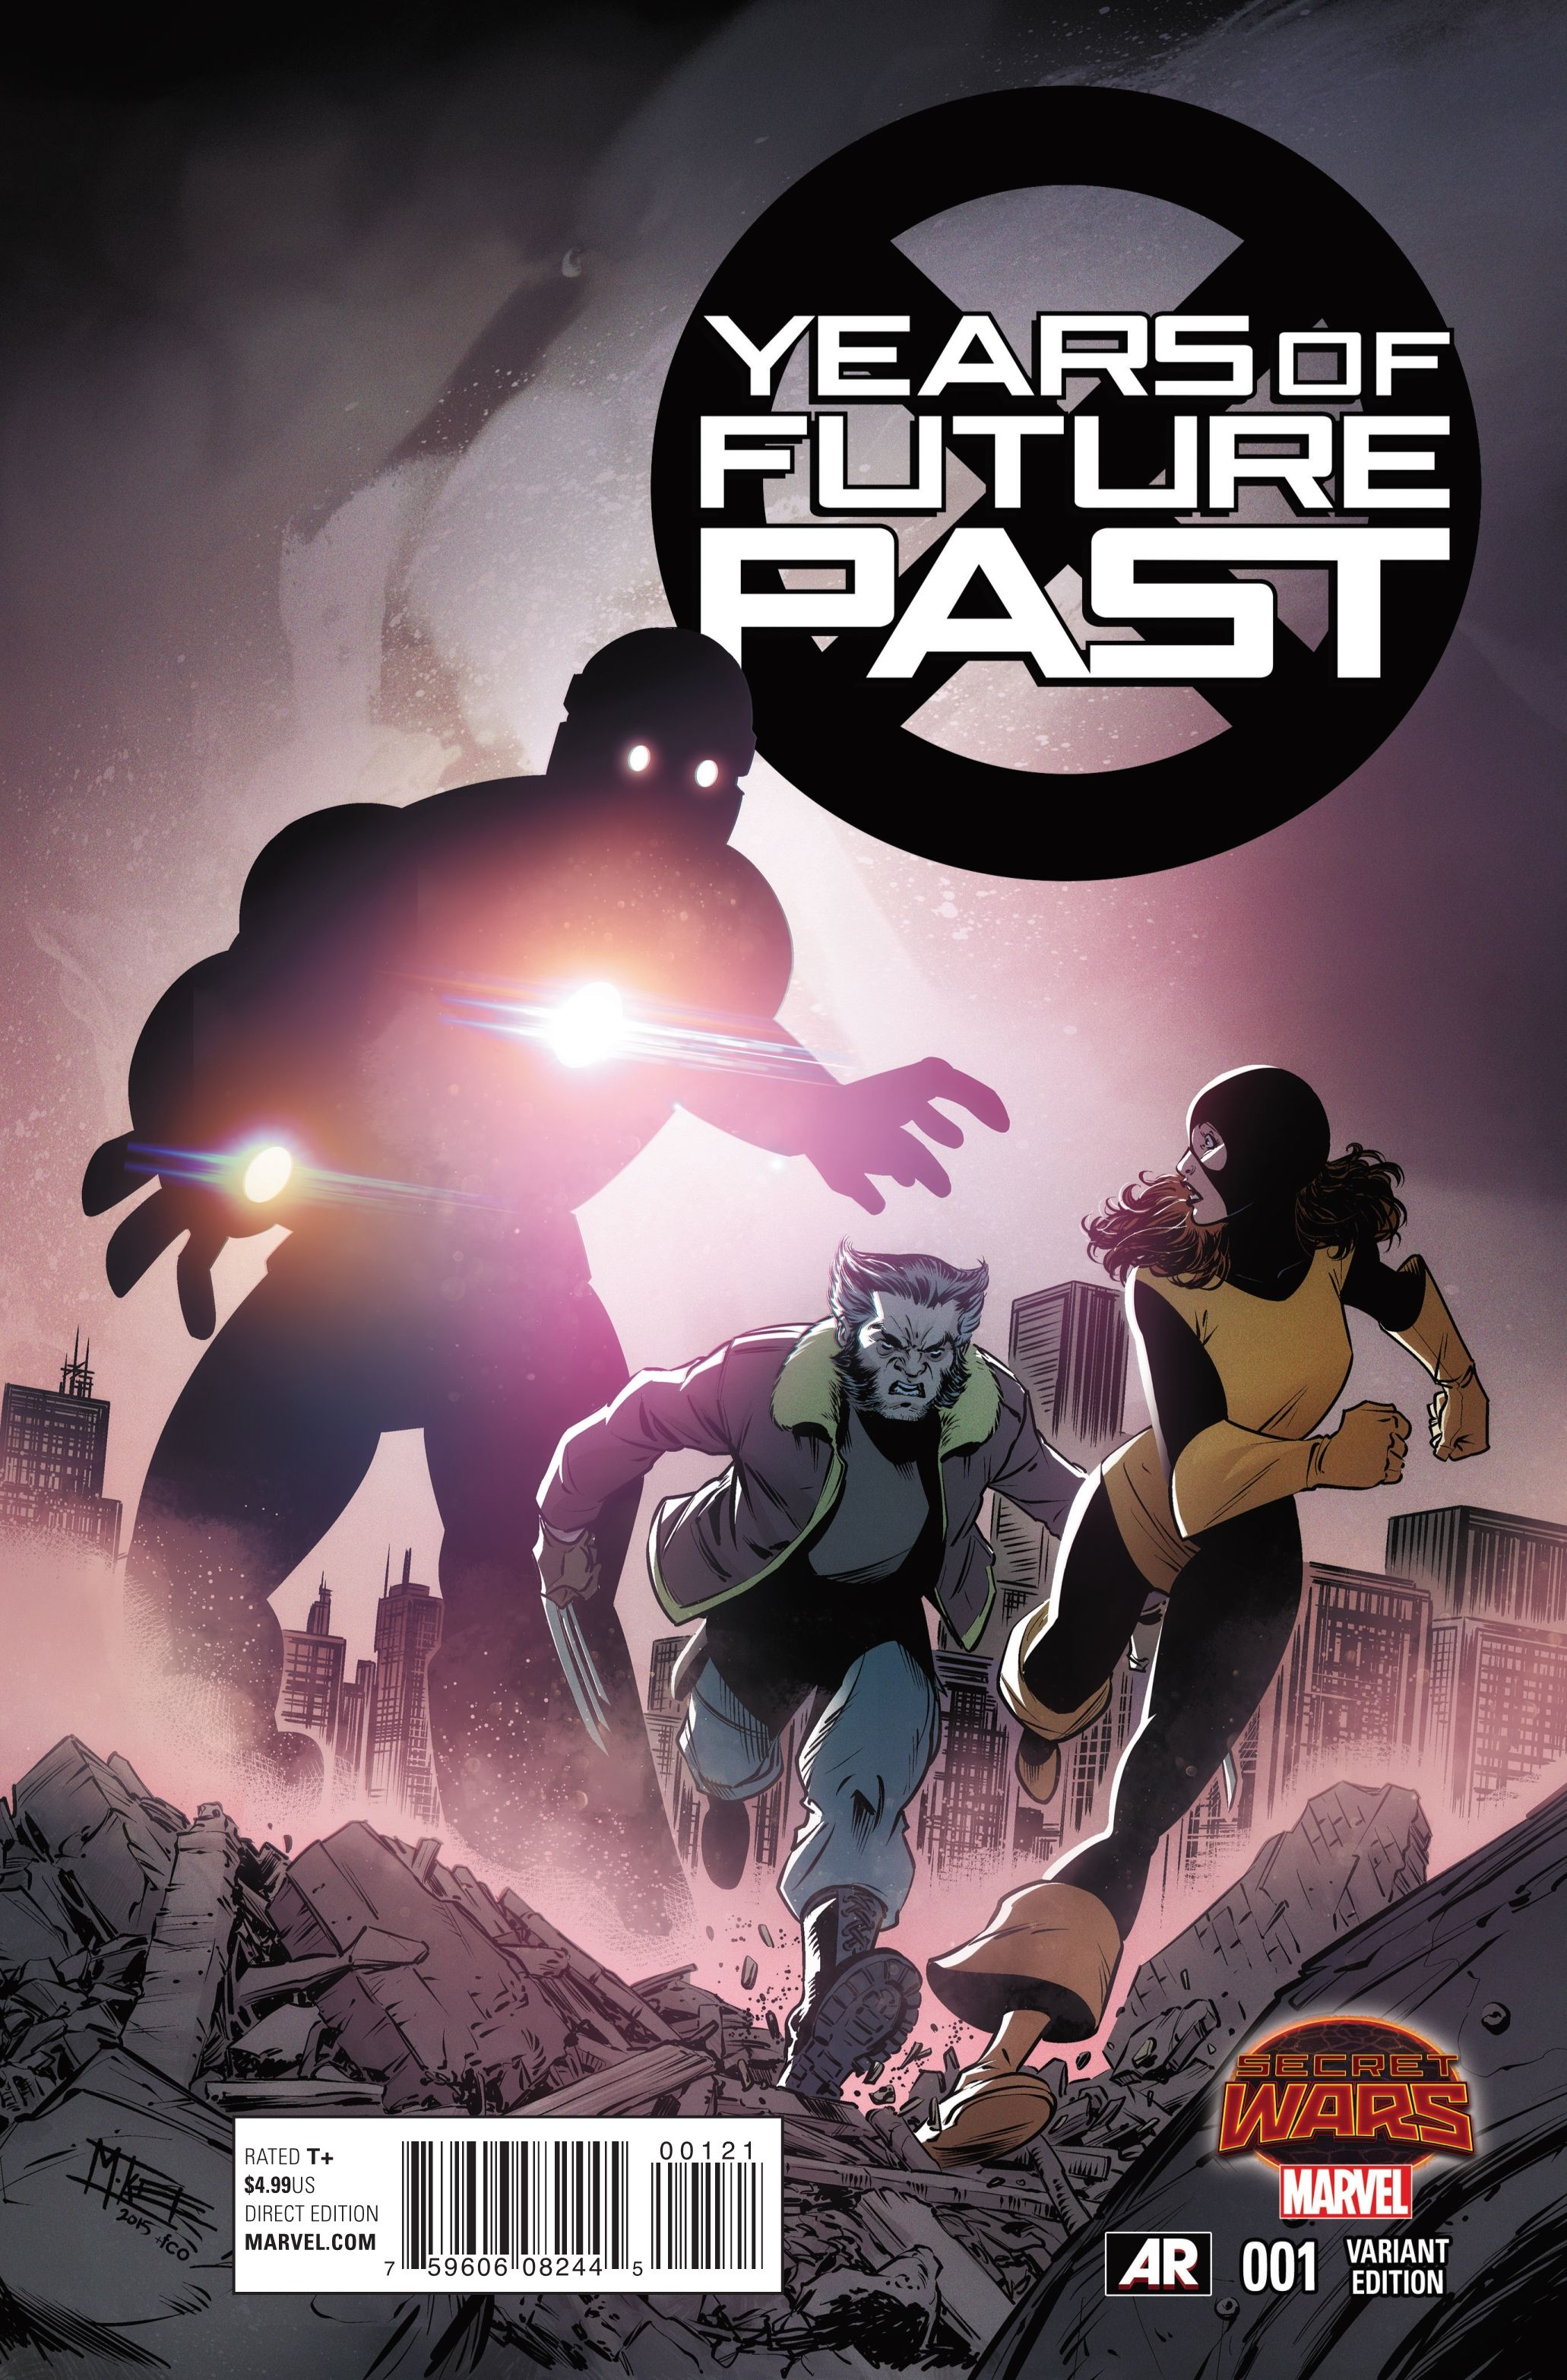 Preview Years Of Future Past 1 All Comic Com Uncanny X Men Ms Gs